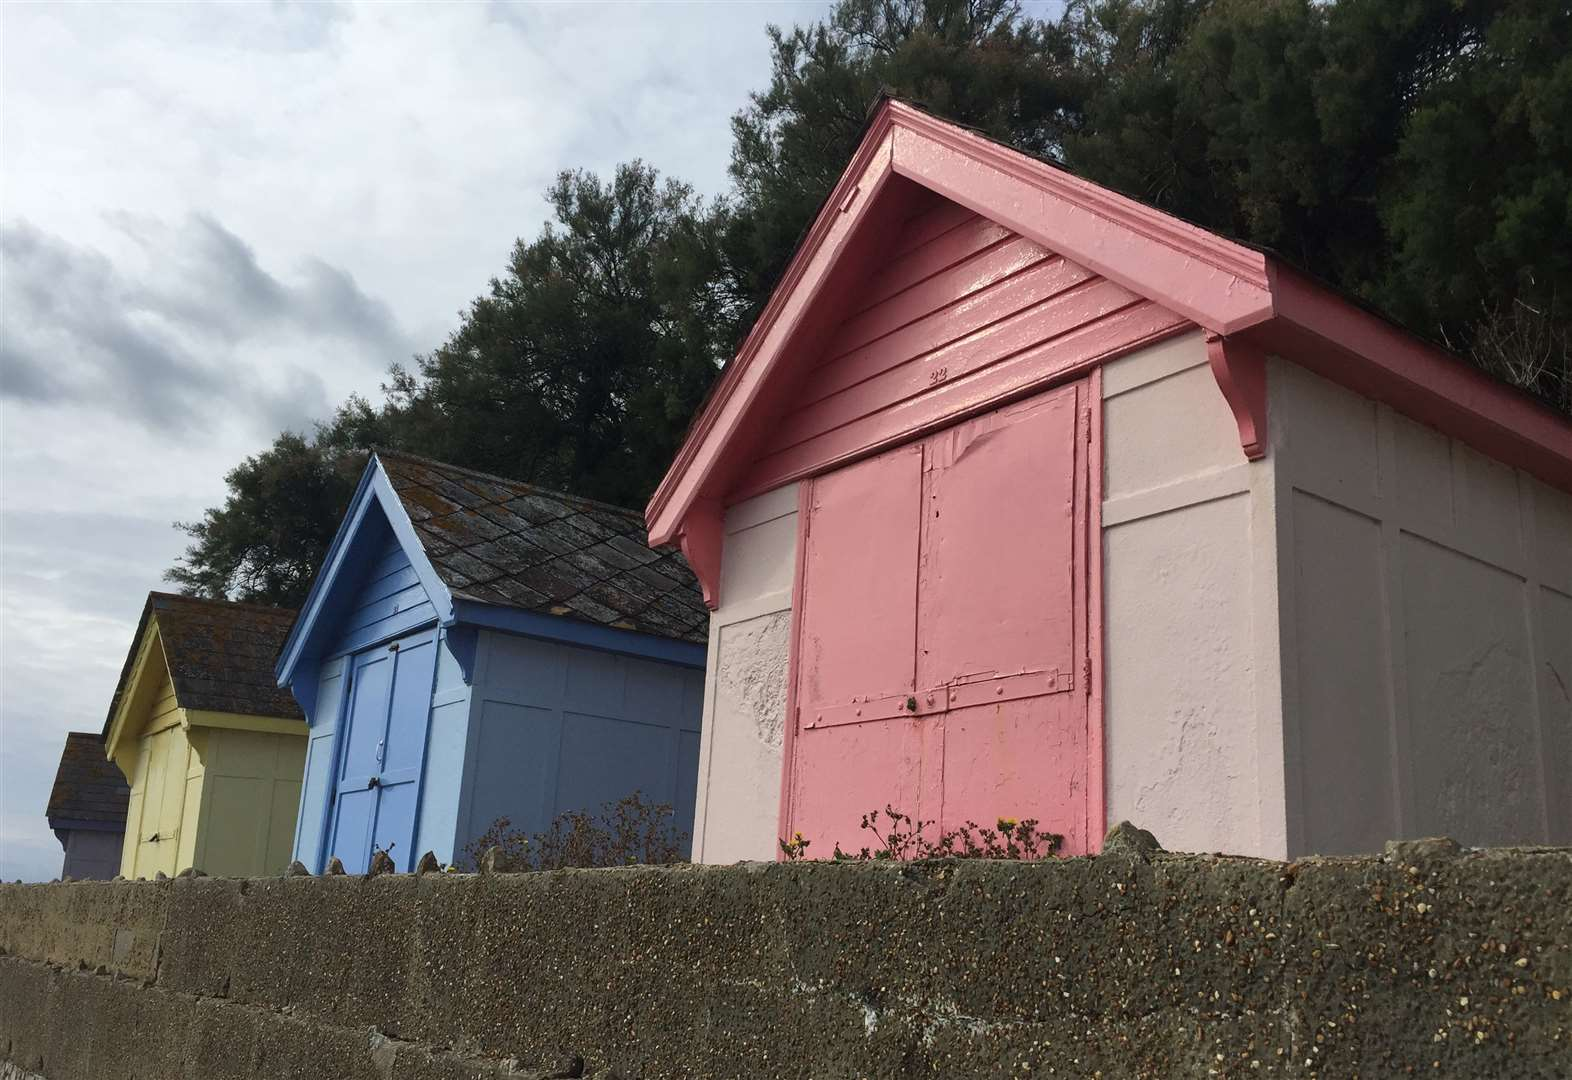 Locks are removed from beach huts